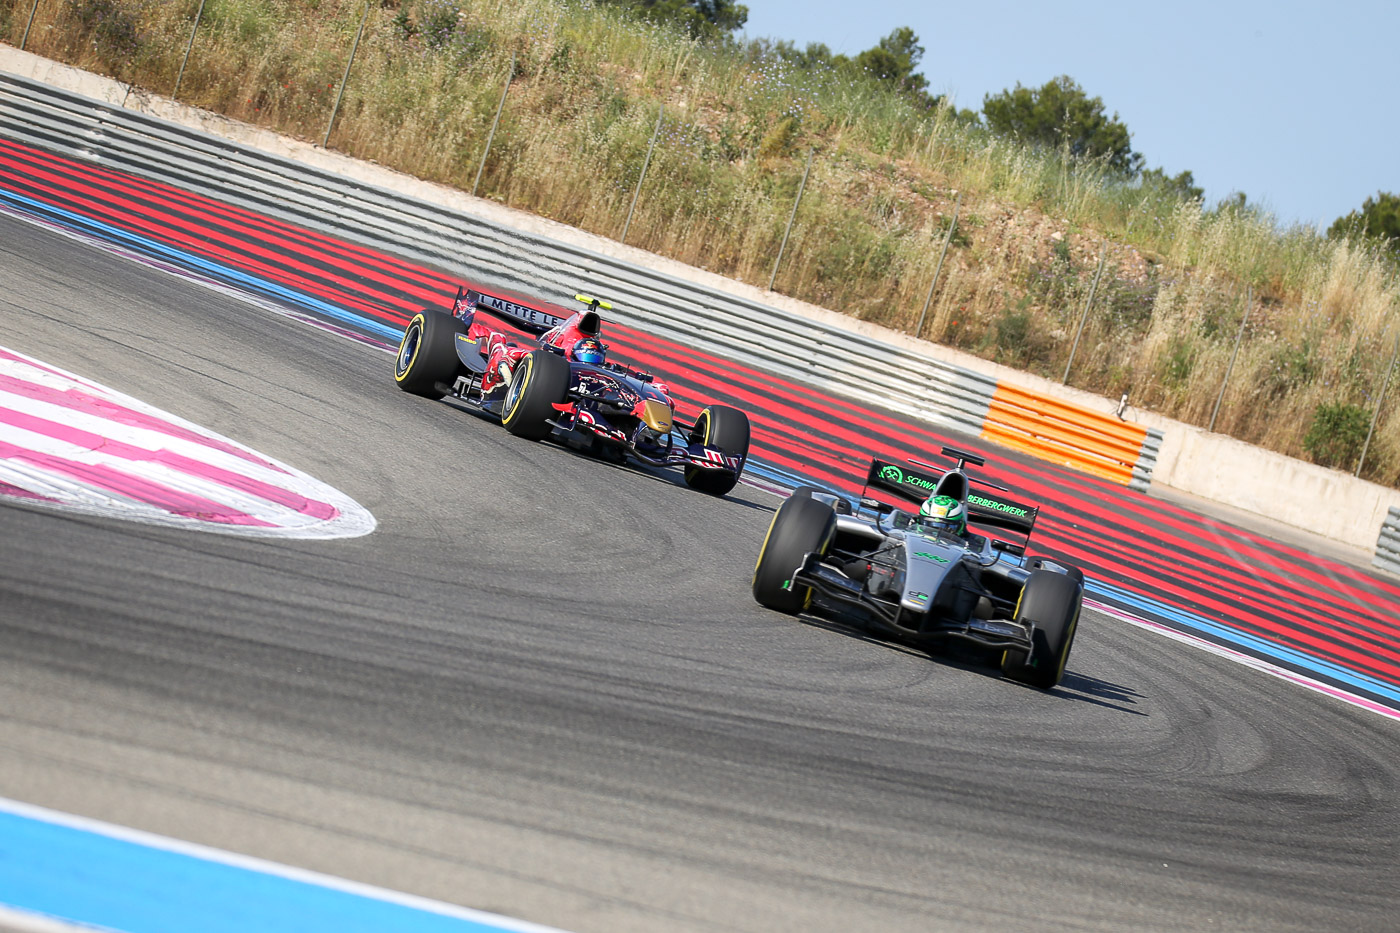 Qualifying at Paul Ricard 2017.